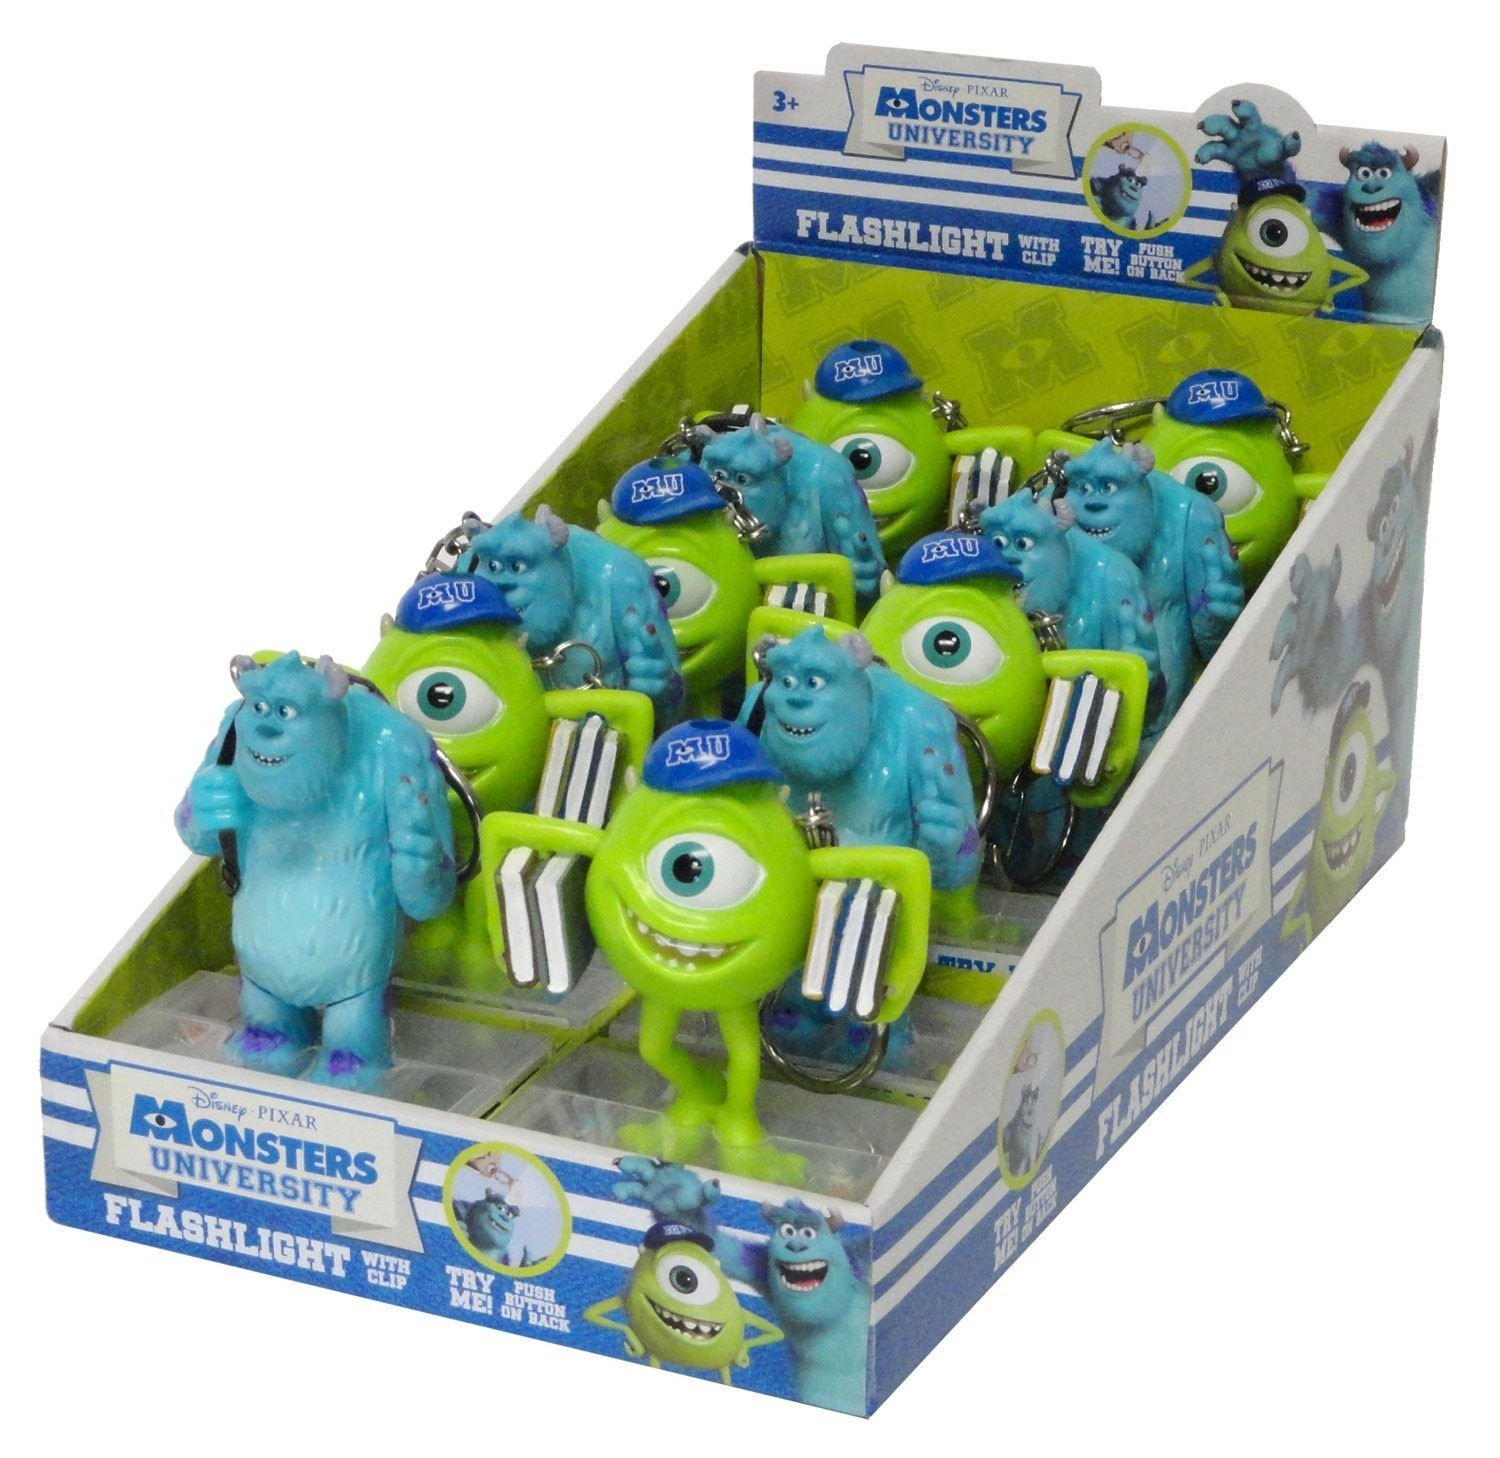 Disney ©Disney•Pixar Monsters University Flashlight with candy